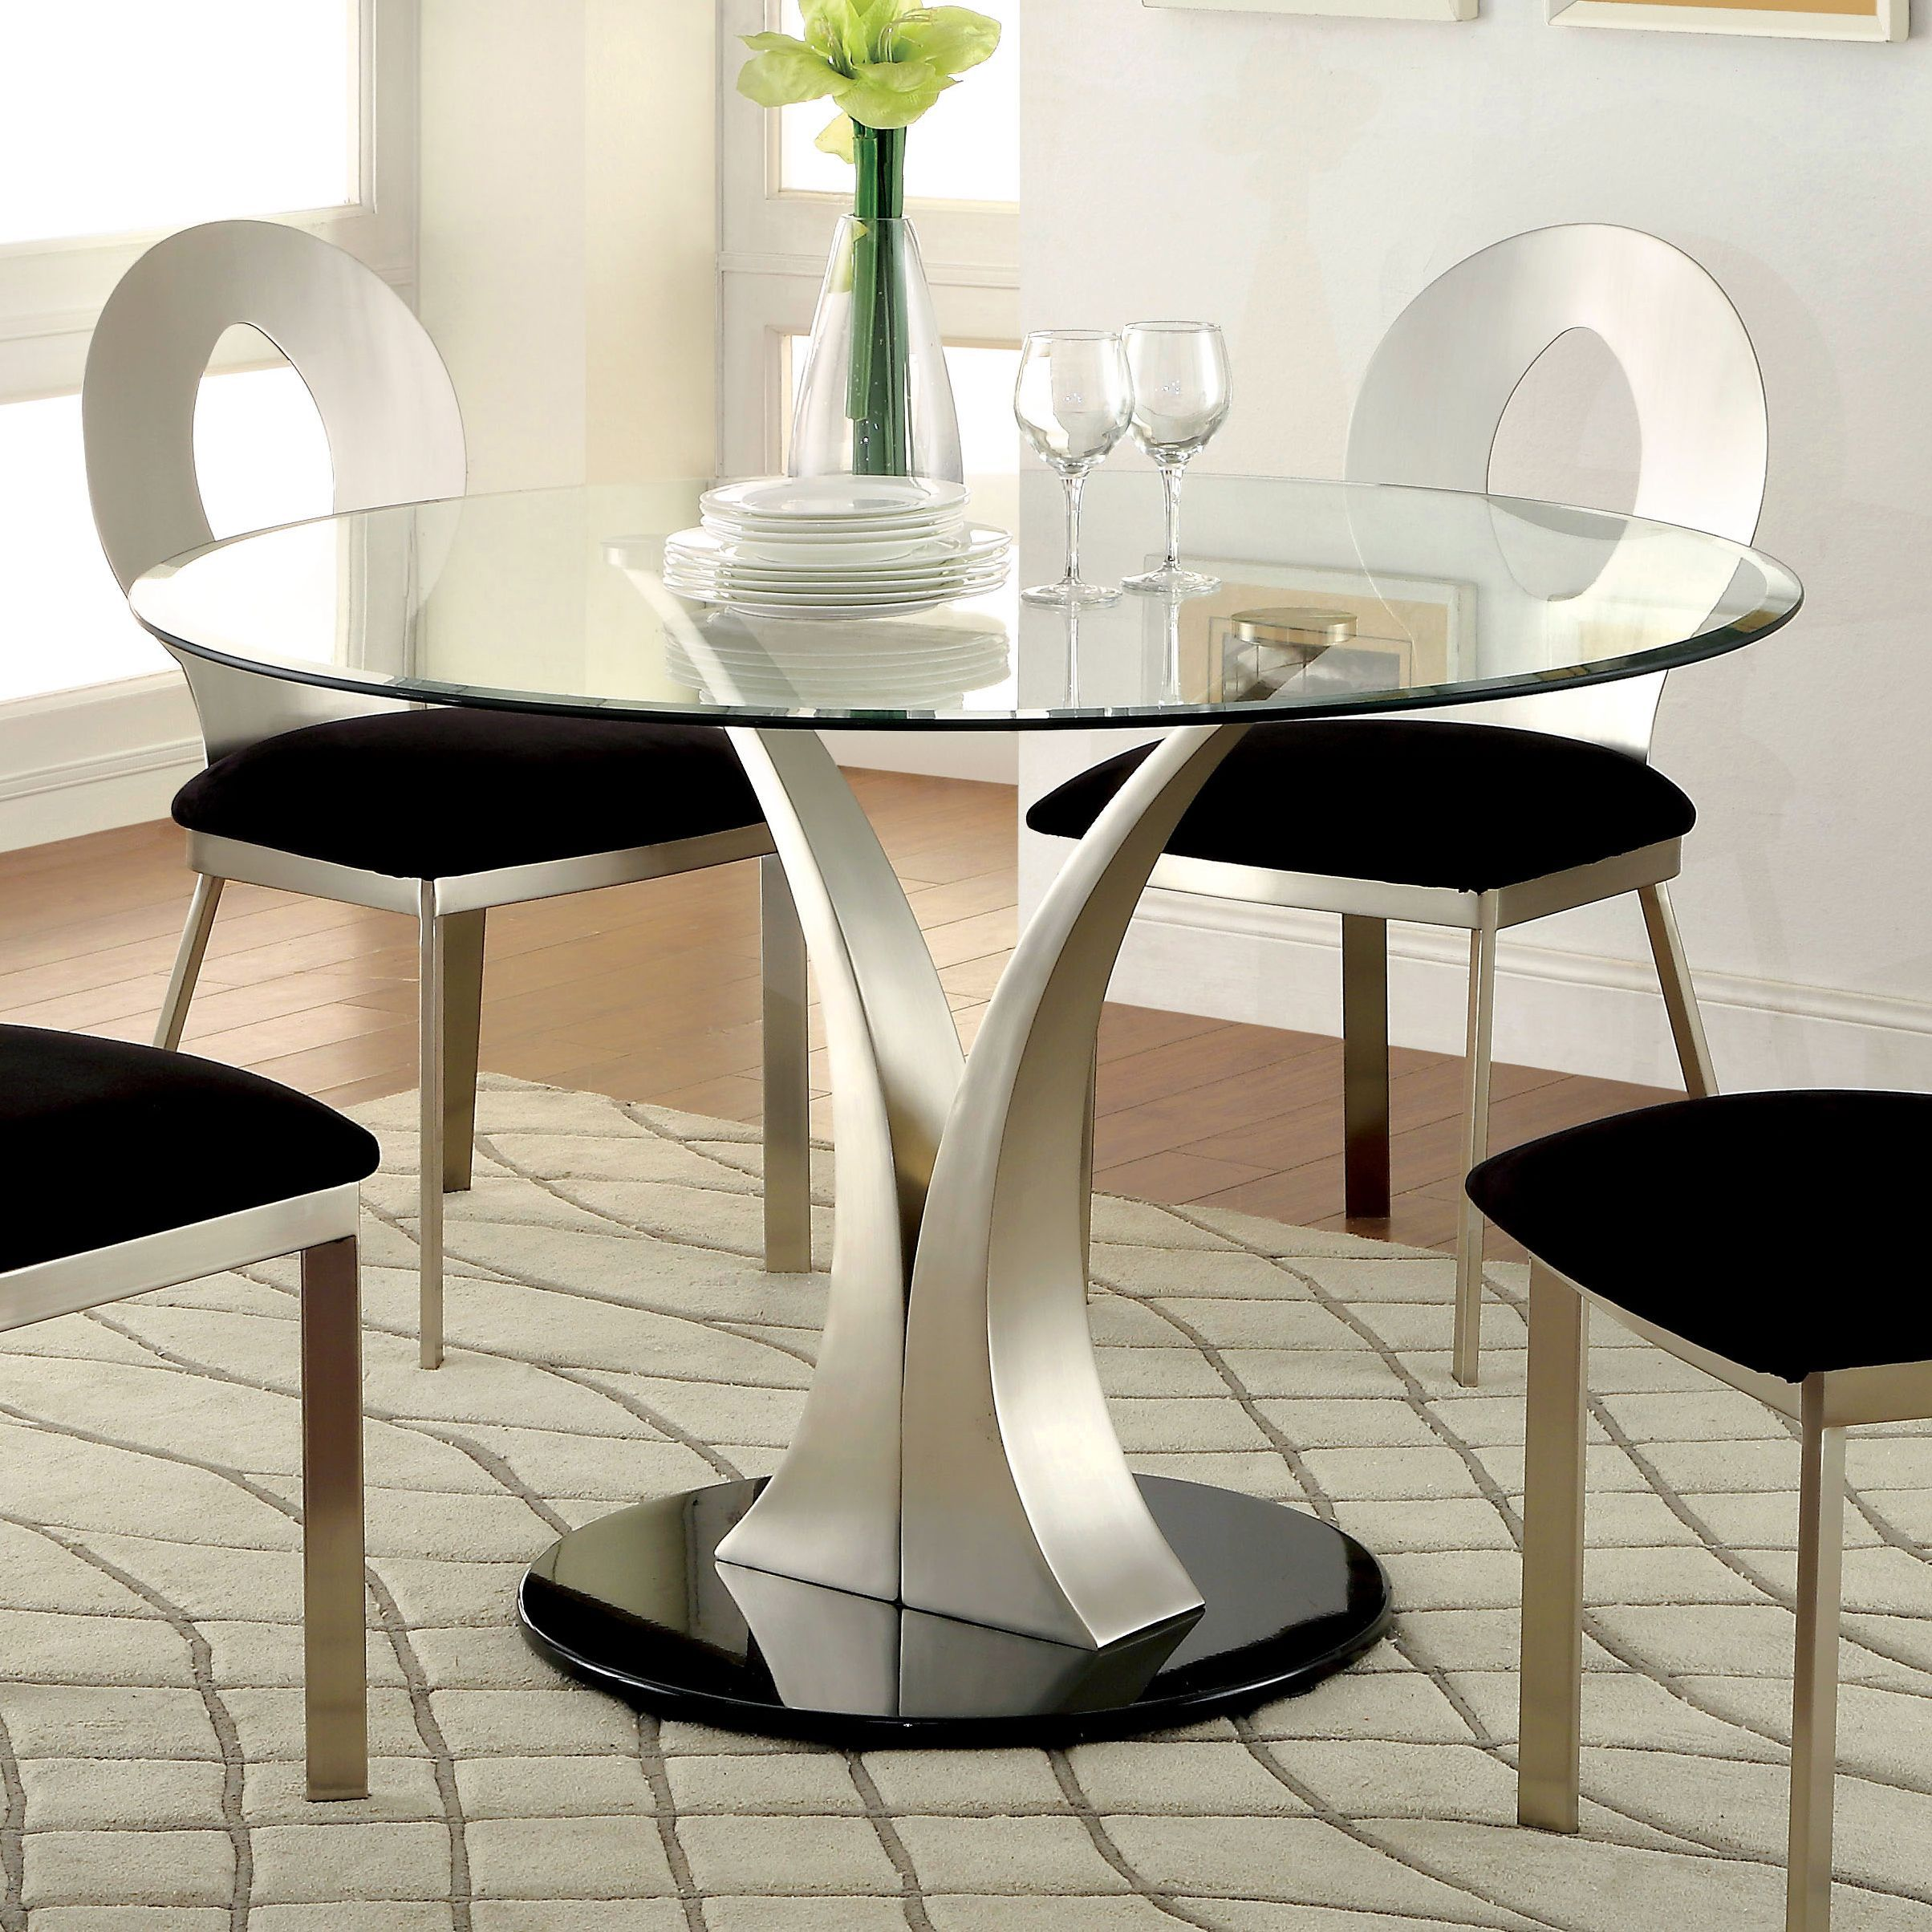 Dining Room Furniture Glass Sculpture Iii Contemporary Silver Dining Table By Foa